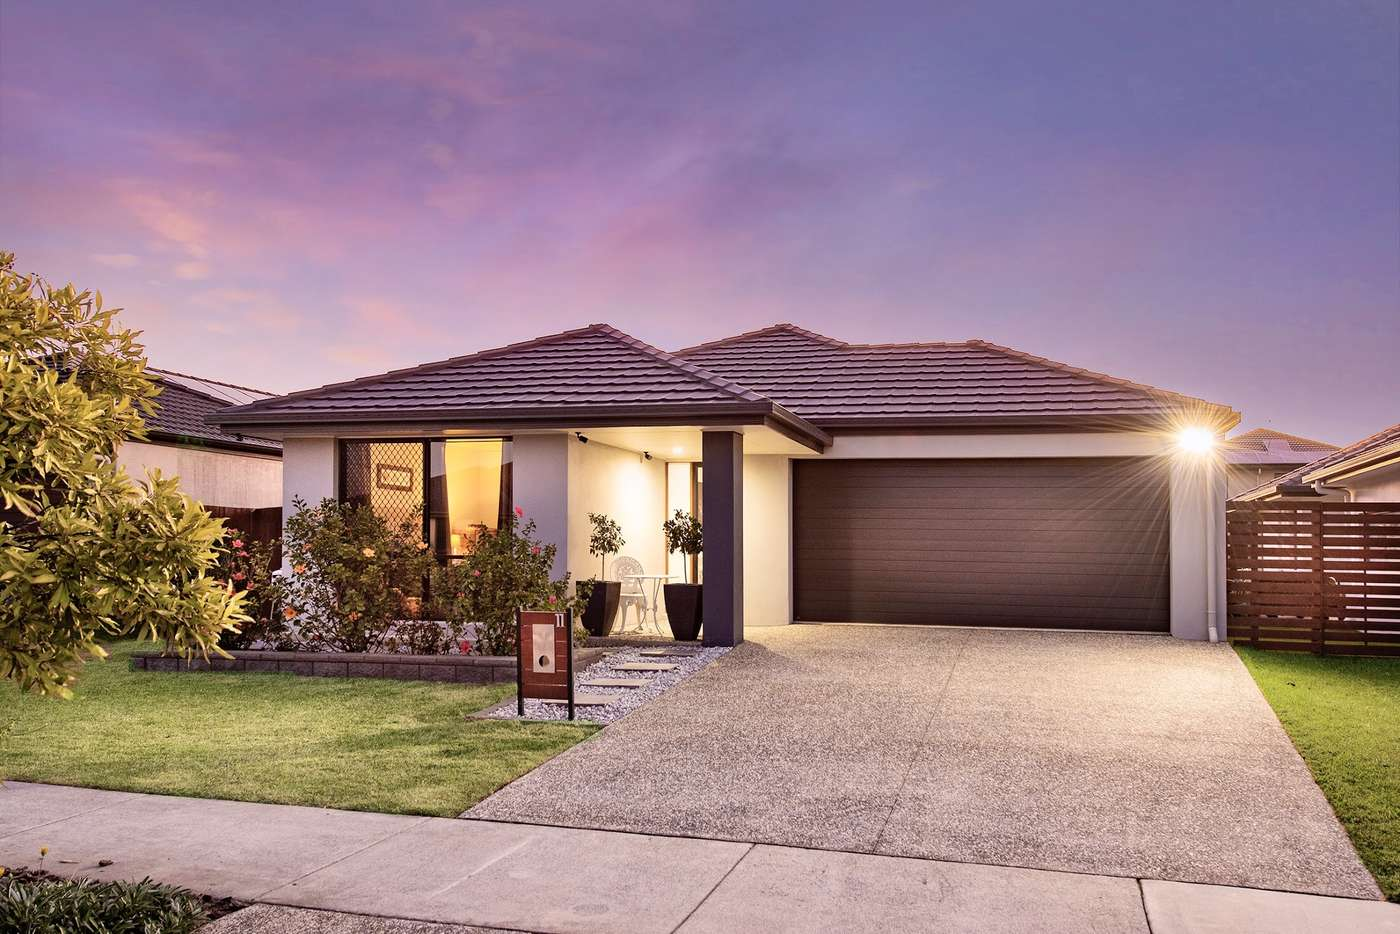 Main view of Homely house listing, 11 Curtis St, Burpengary East QLD 4505